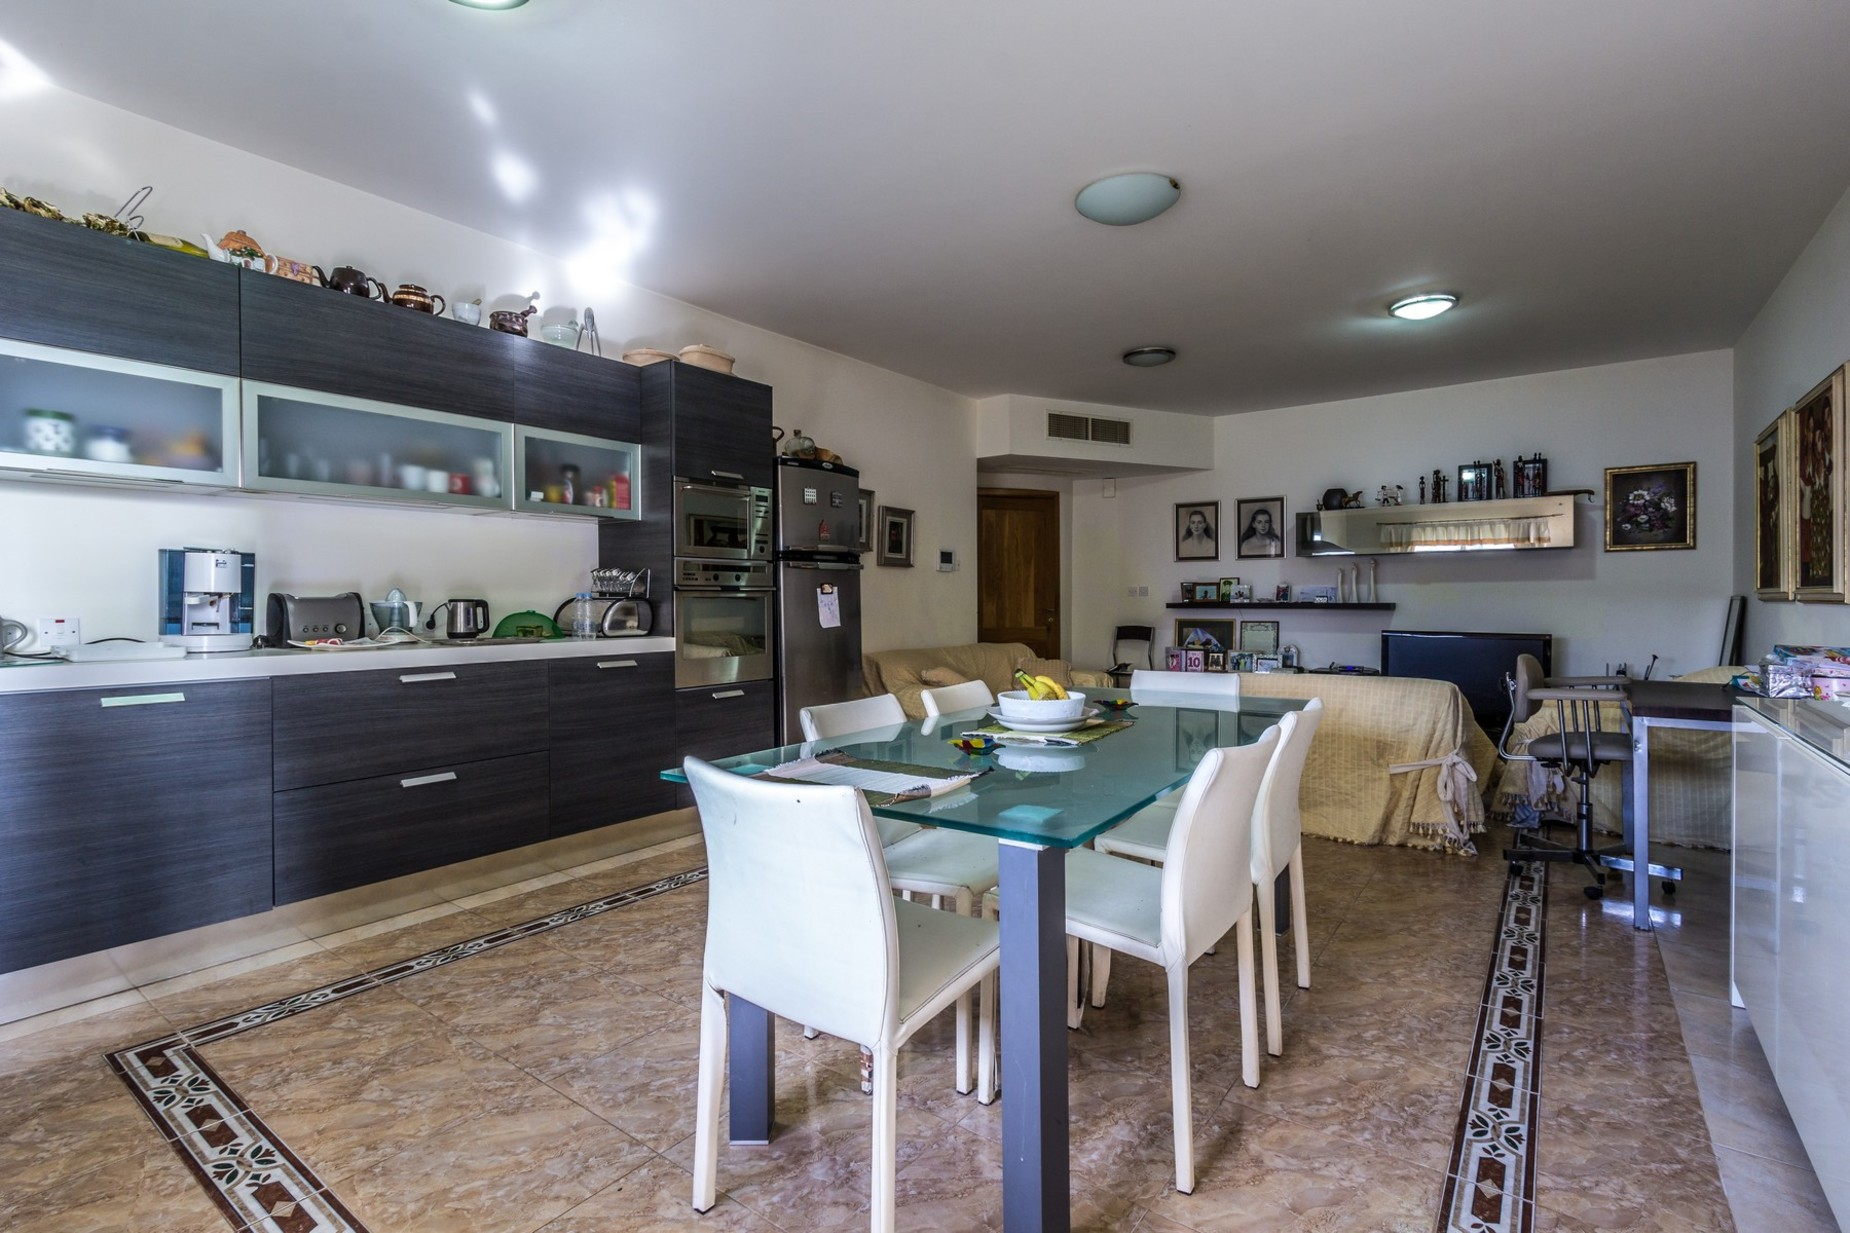 3 bed Apartment For Sale in Rabat, Rabat - thumb 11